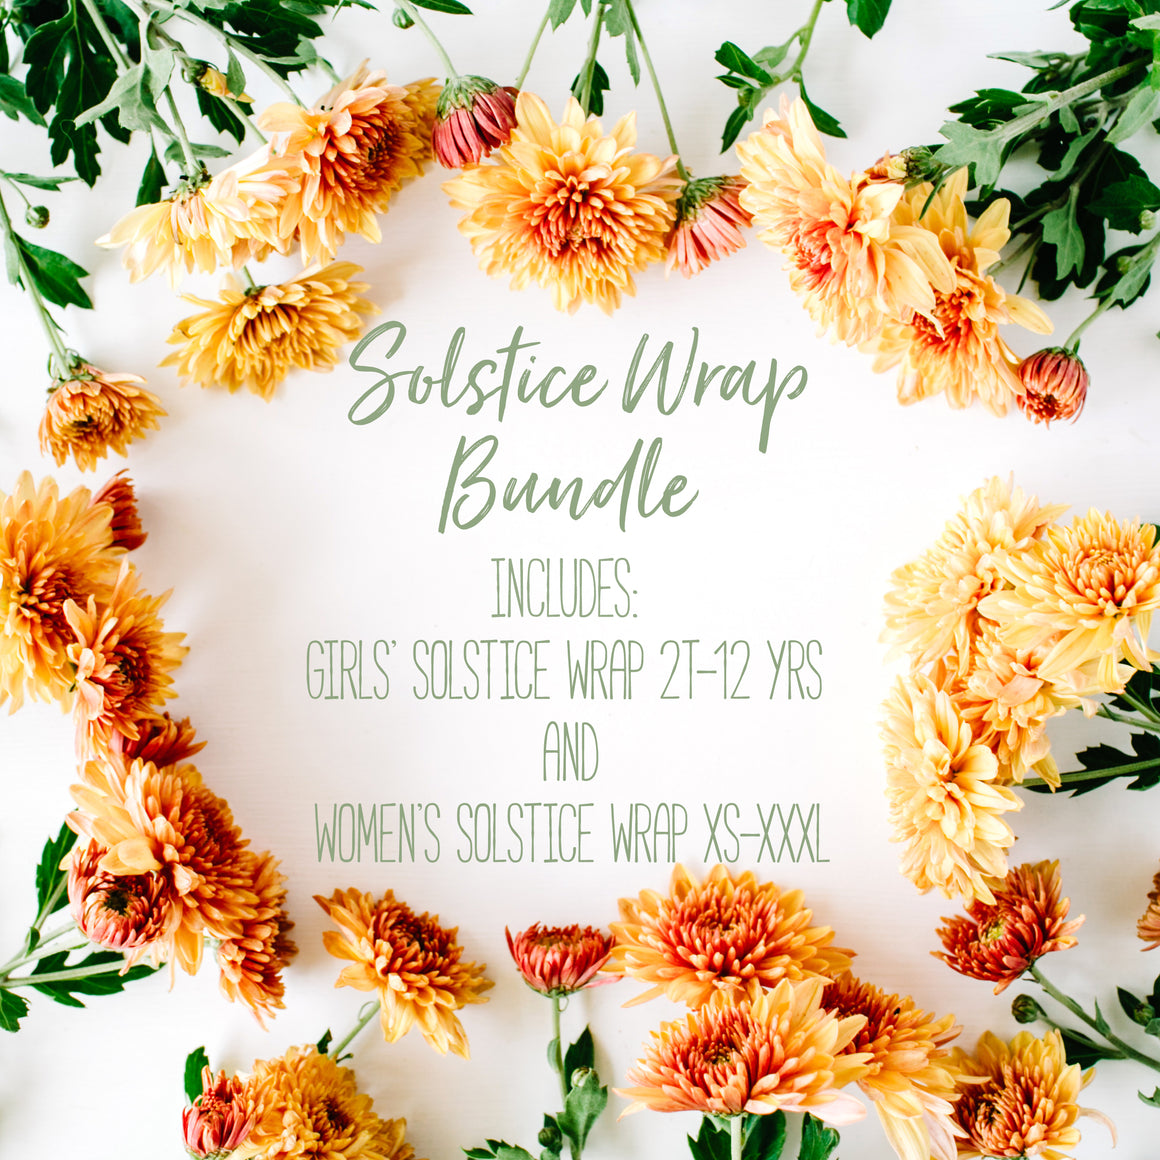 Solstice Wrap Bundle